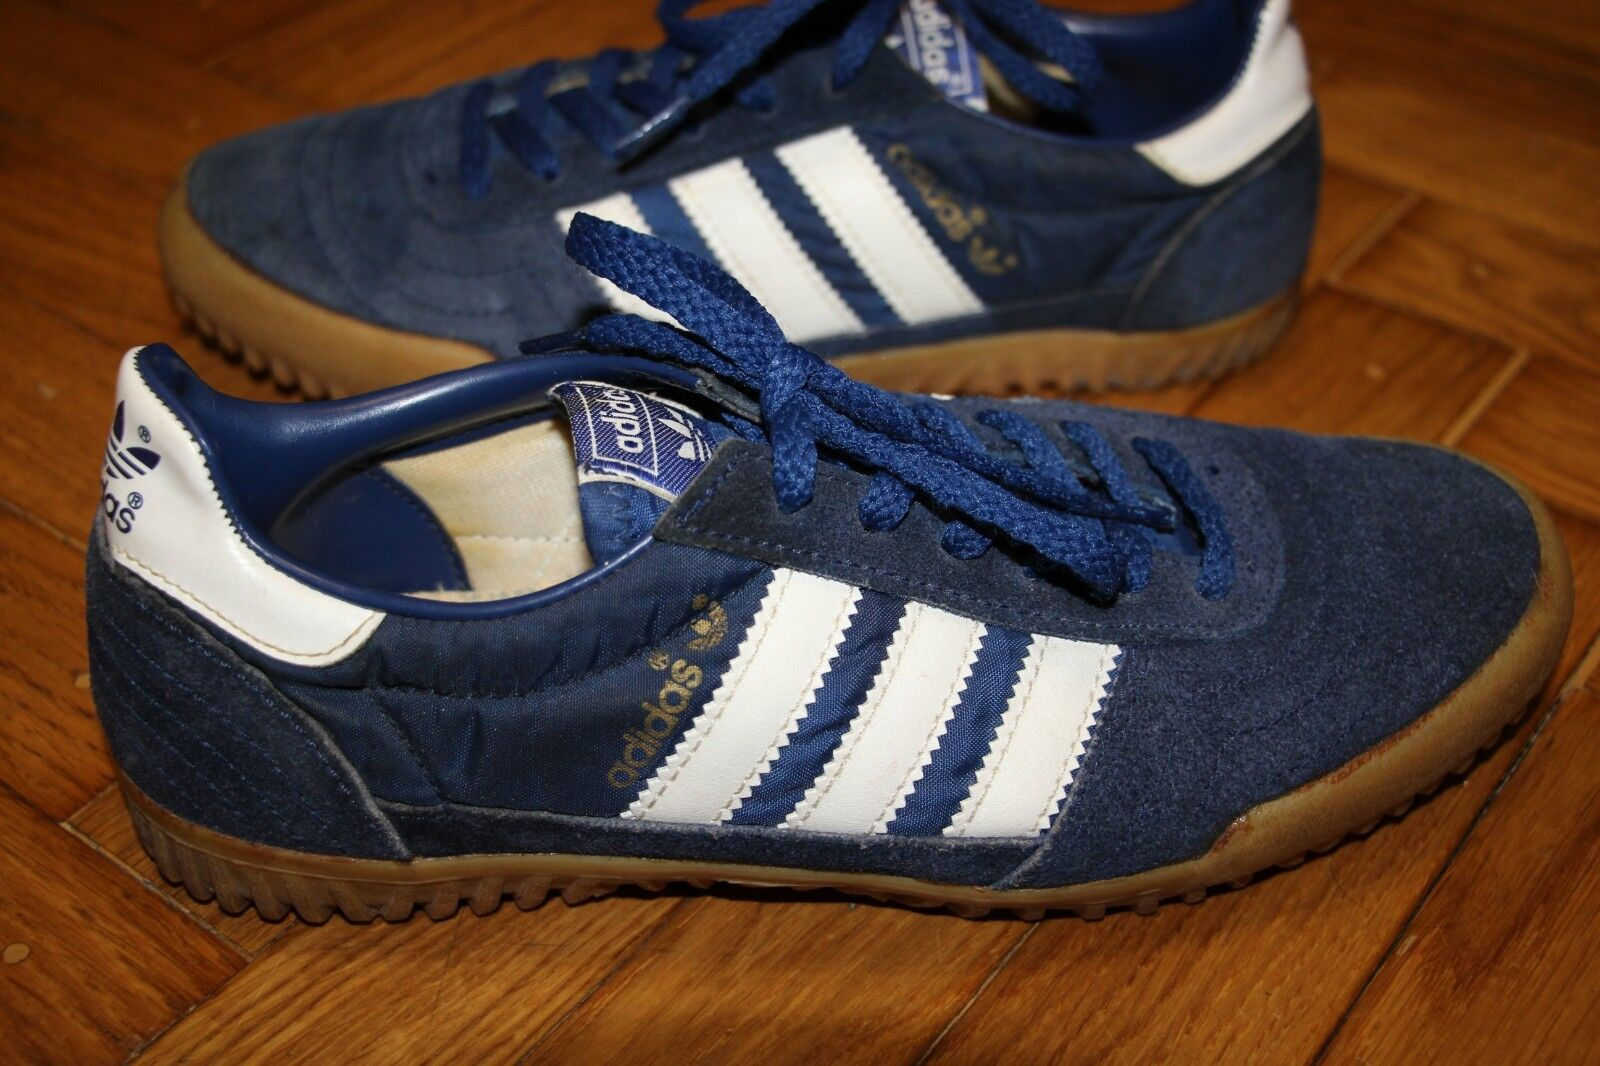 VINTAGE ADIDAS SUPER INDOOR MADE IN TAIWAN RARE 70S 80S